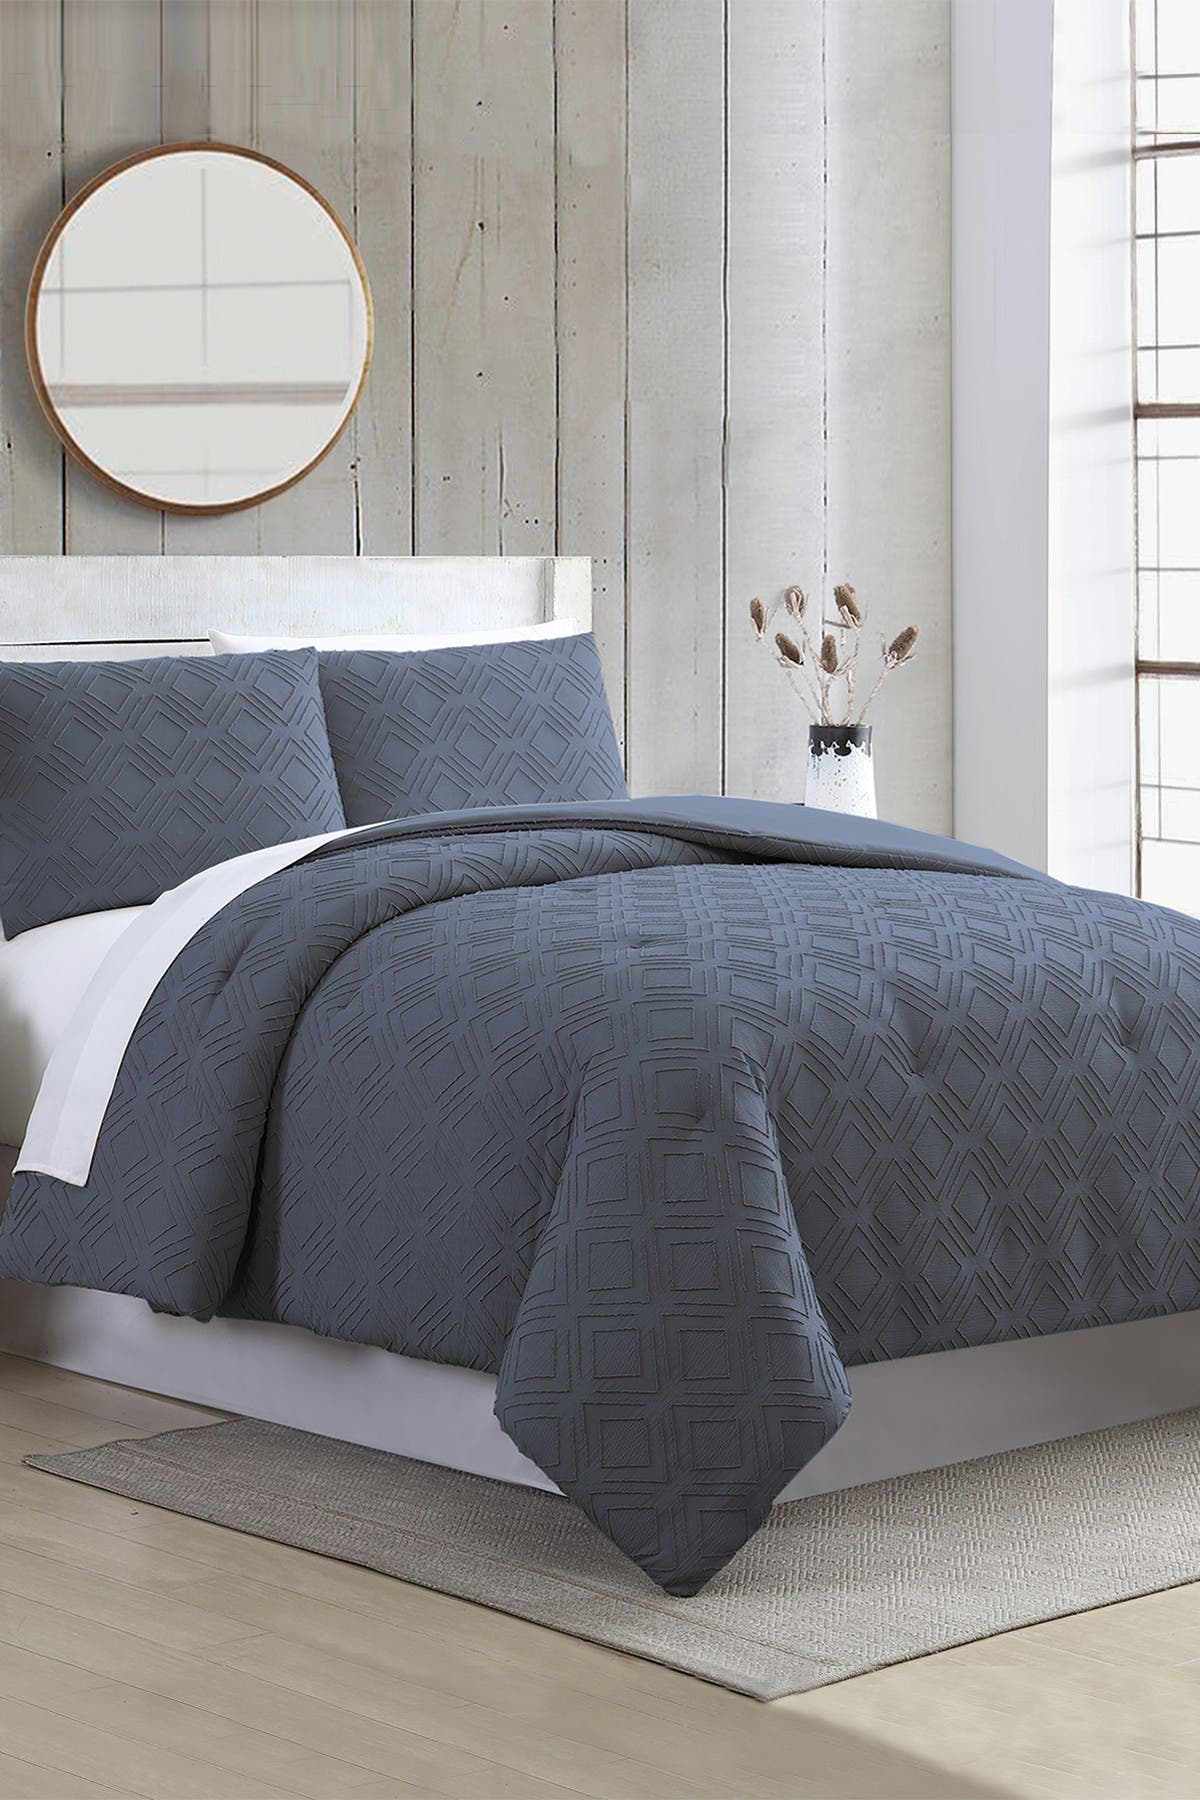 Image of Modern Threads 3-Piece Clipped Jacquard Comforter Set - Ethos Navy - King